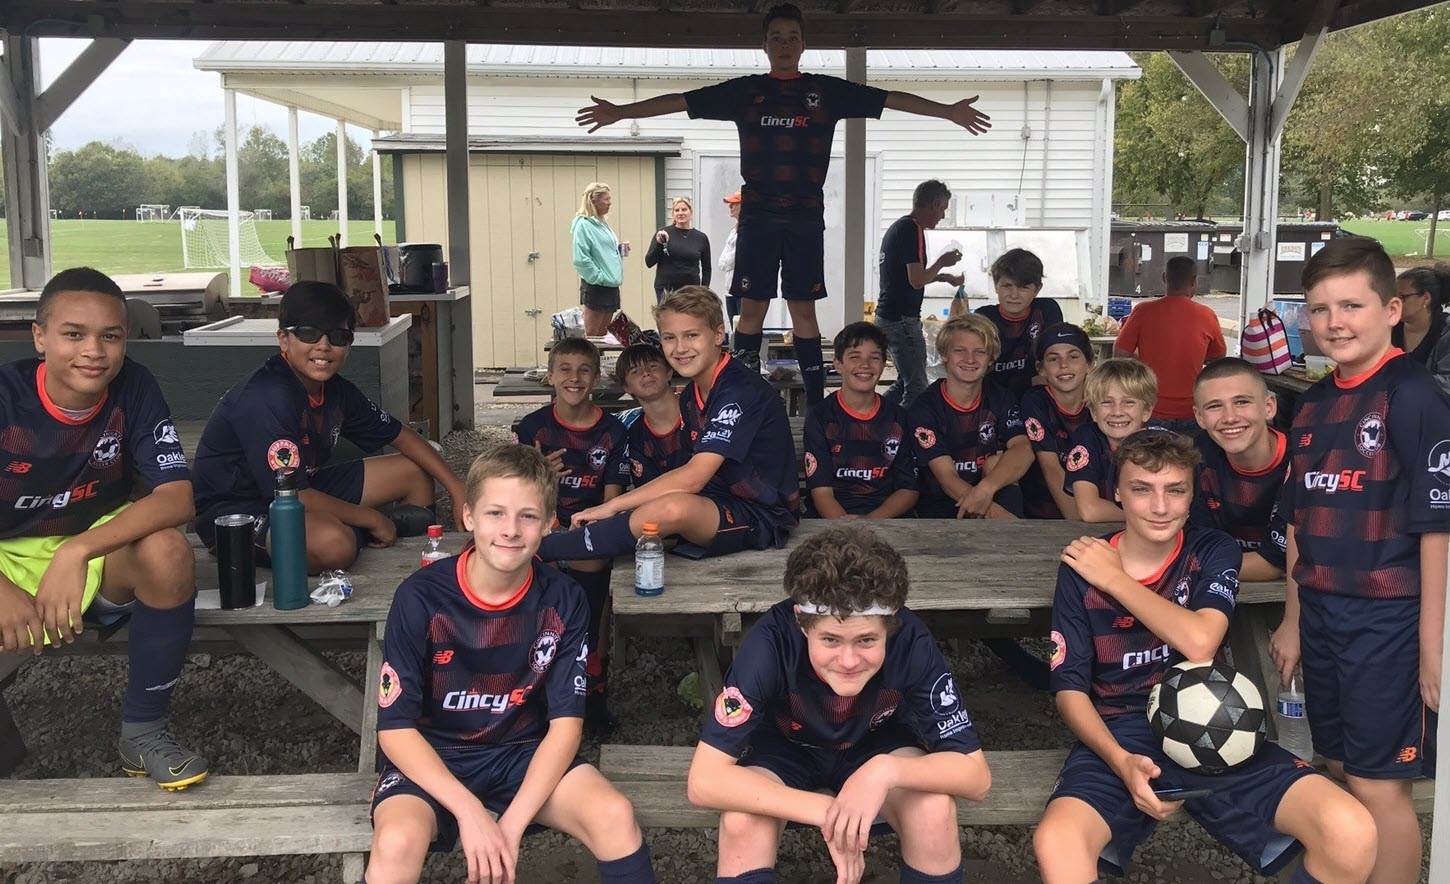 Cincy SC '06 boys in their navy jerseys.